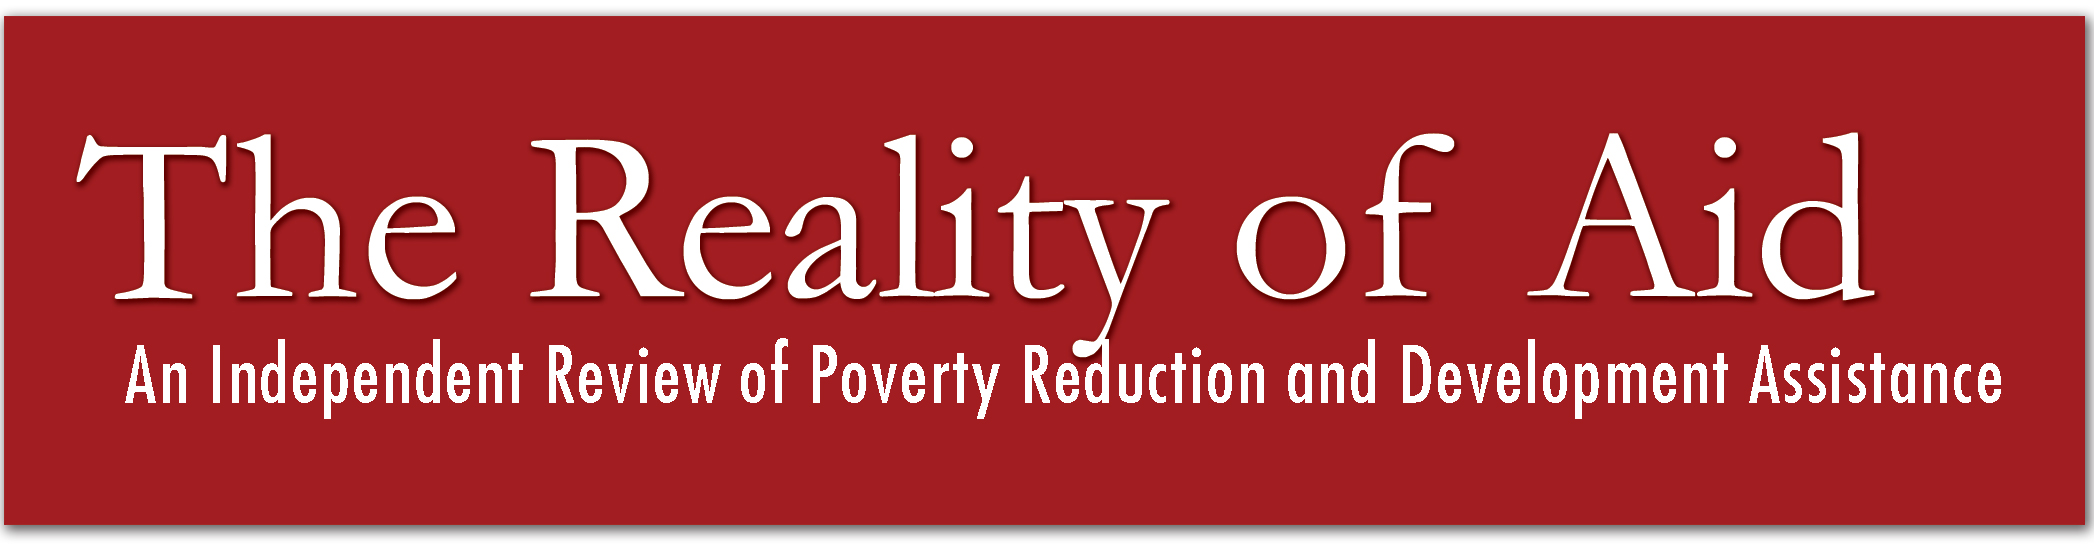 logo for The Reality Of Aid